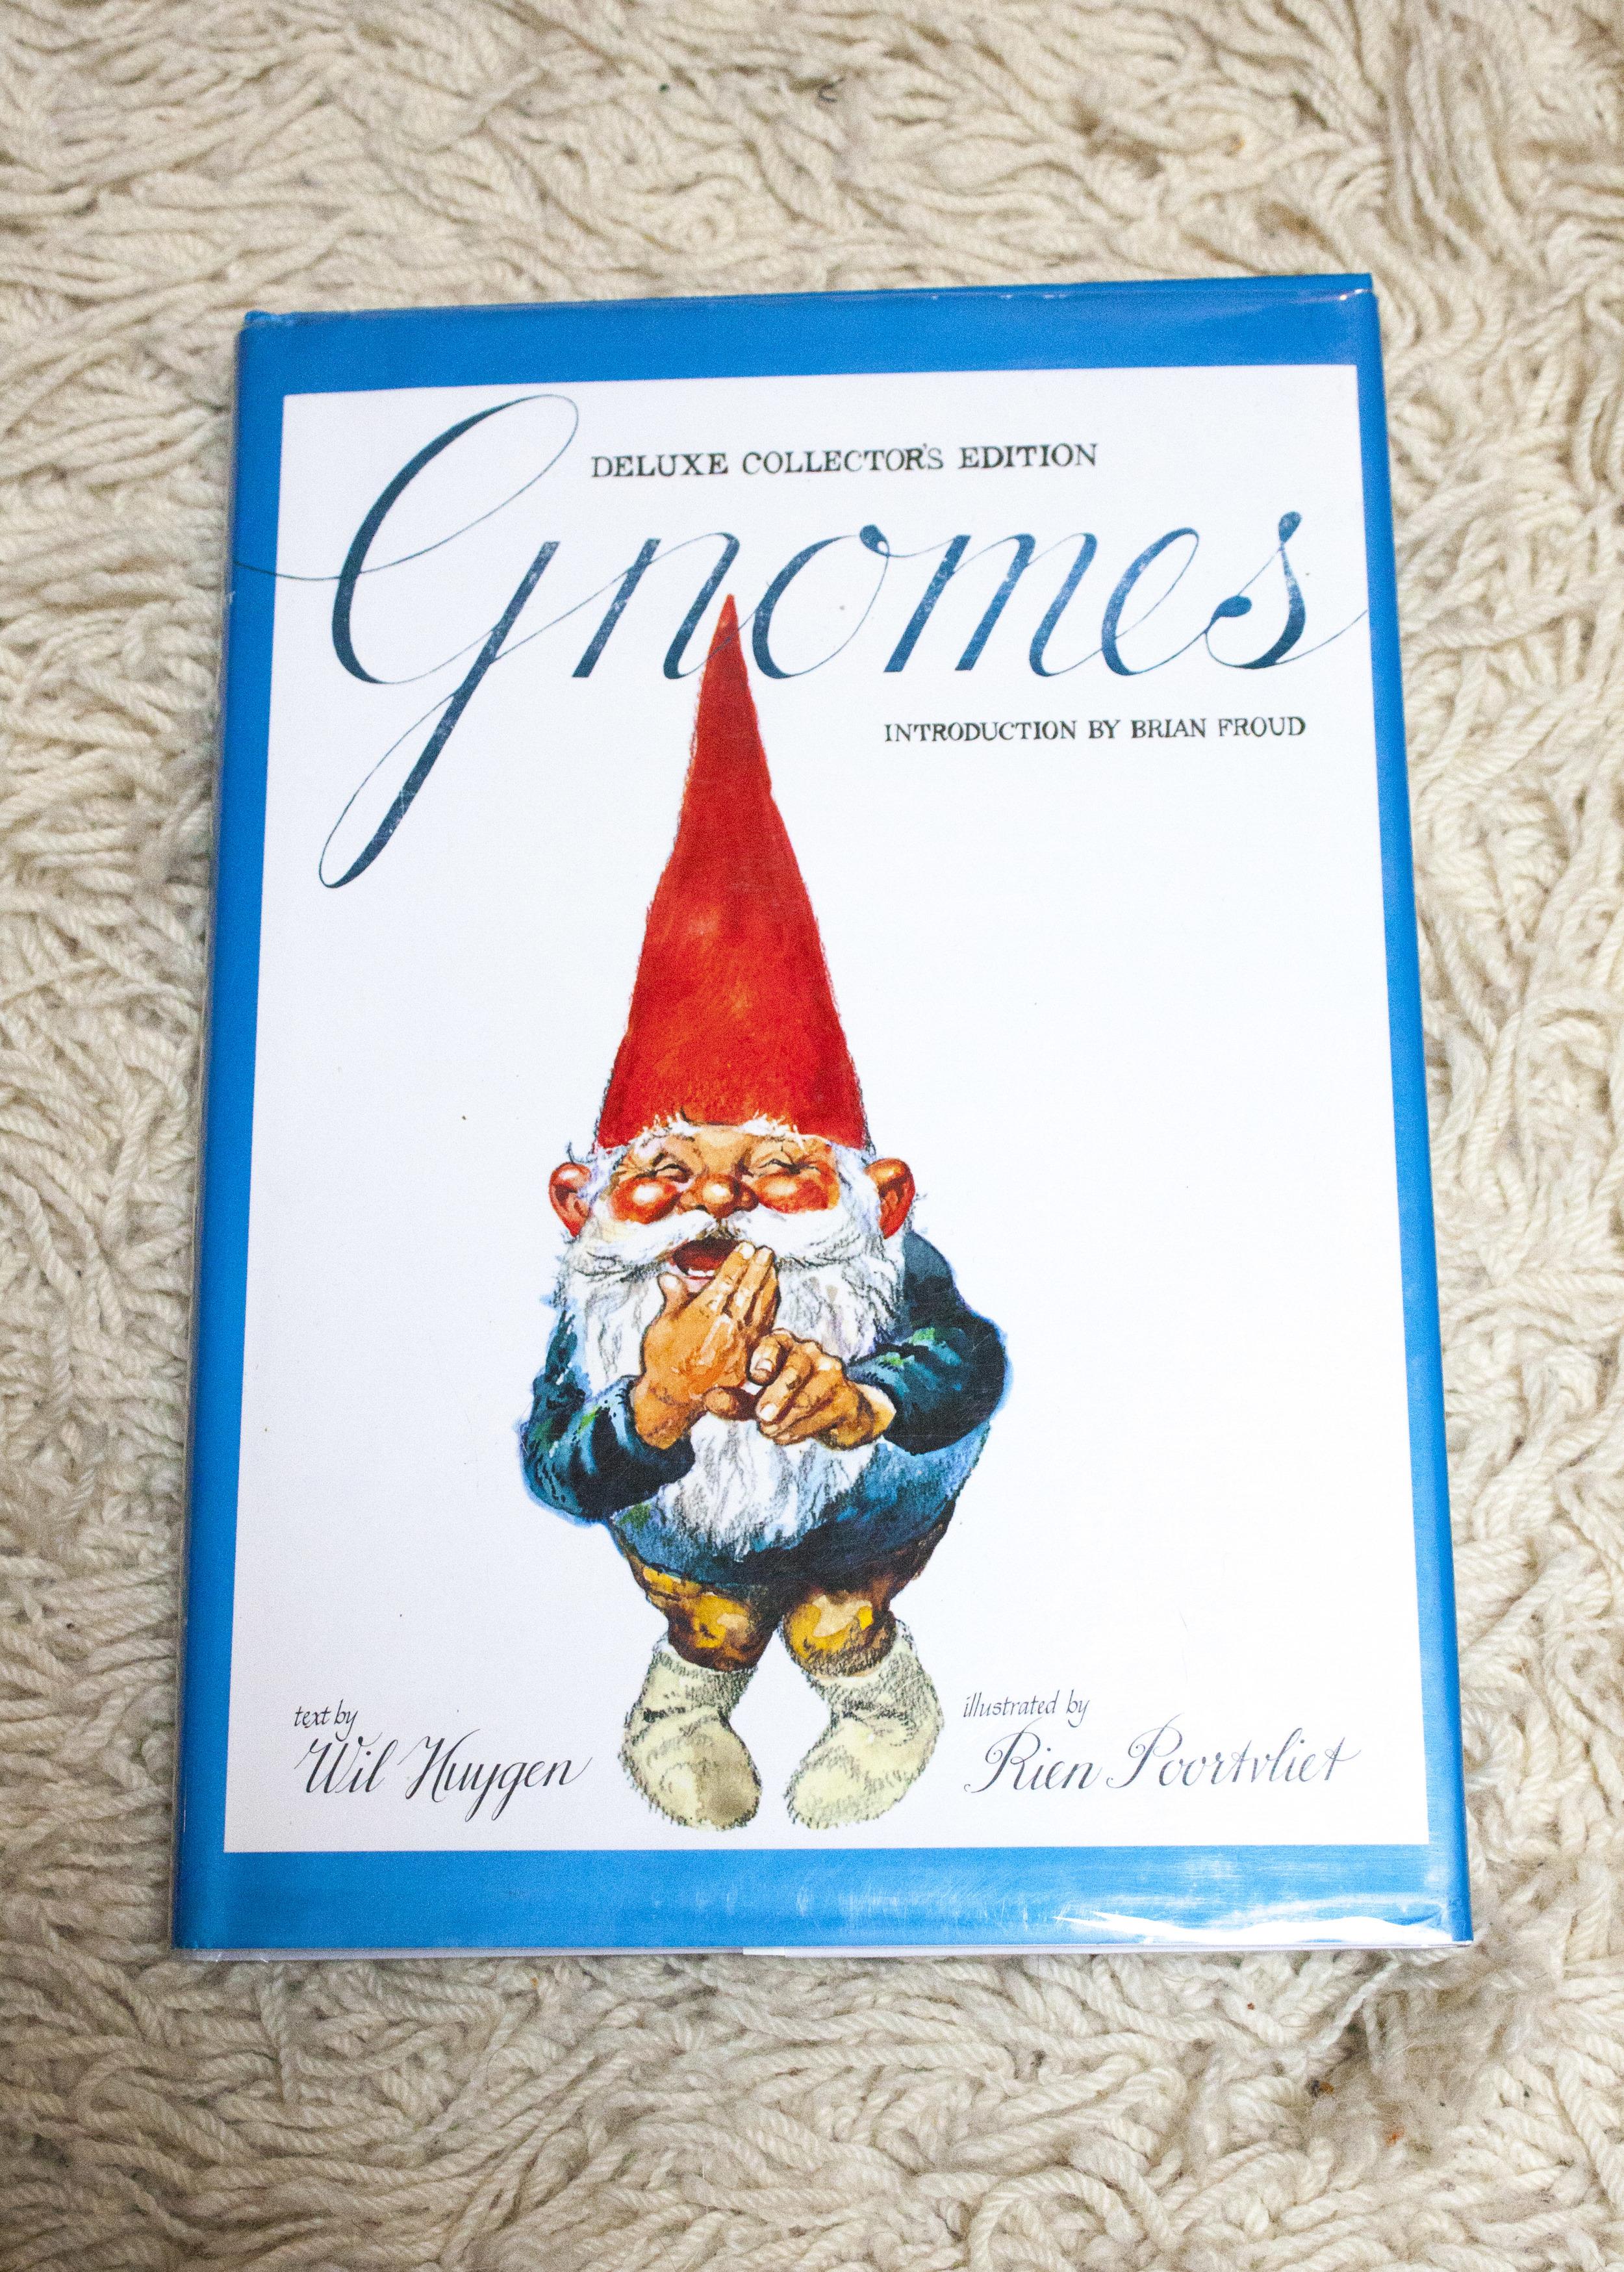 lovely gnome book. Found at Monkey's paw, rare and antique book shop on Dundas west.